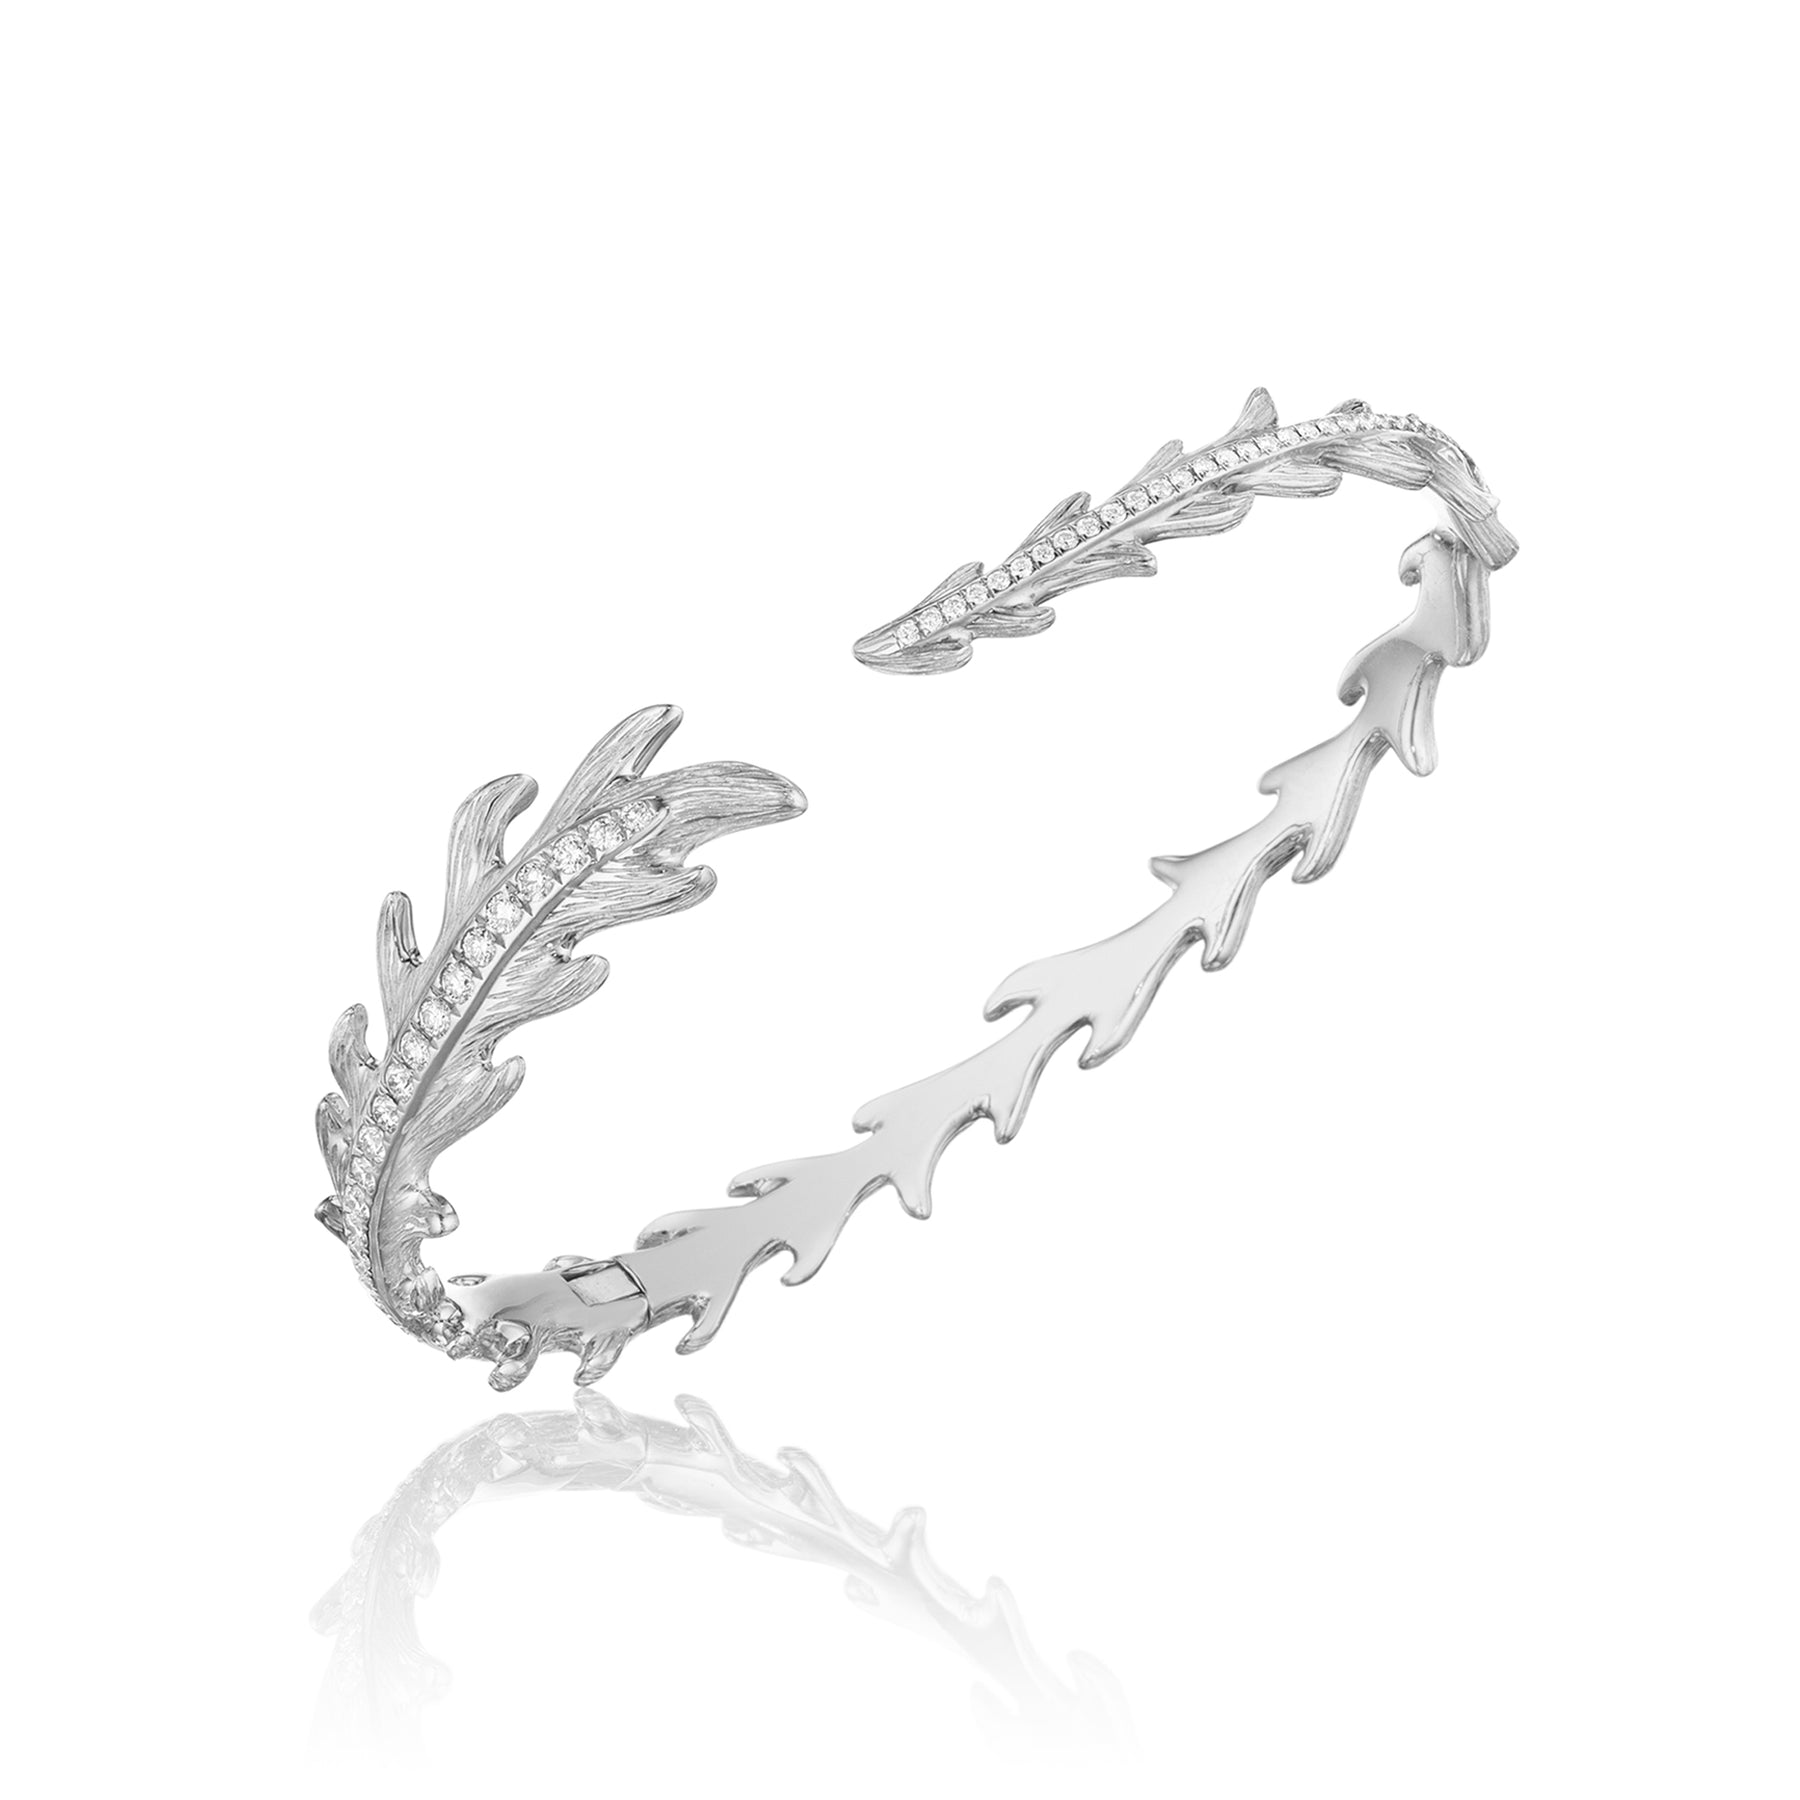 "Phoenix Feather Center Pav""ï""ç'úËÇ£'‹""ï""ç'úËÇ£'Š""ï""ç""ûËÇ£•á Cuff_18k White Gold"